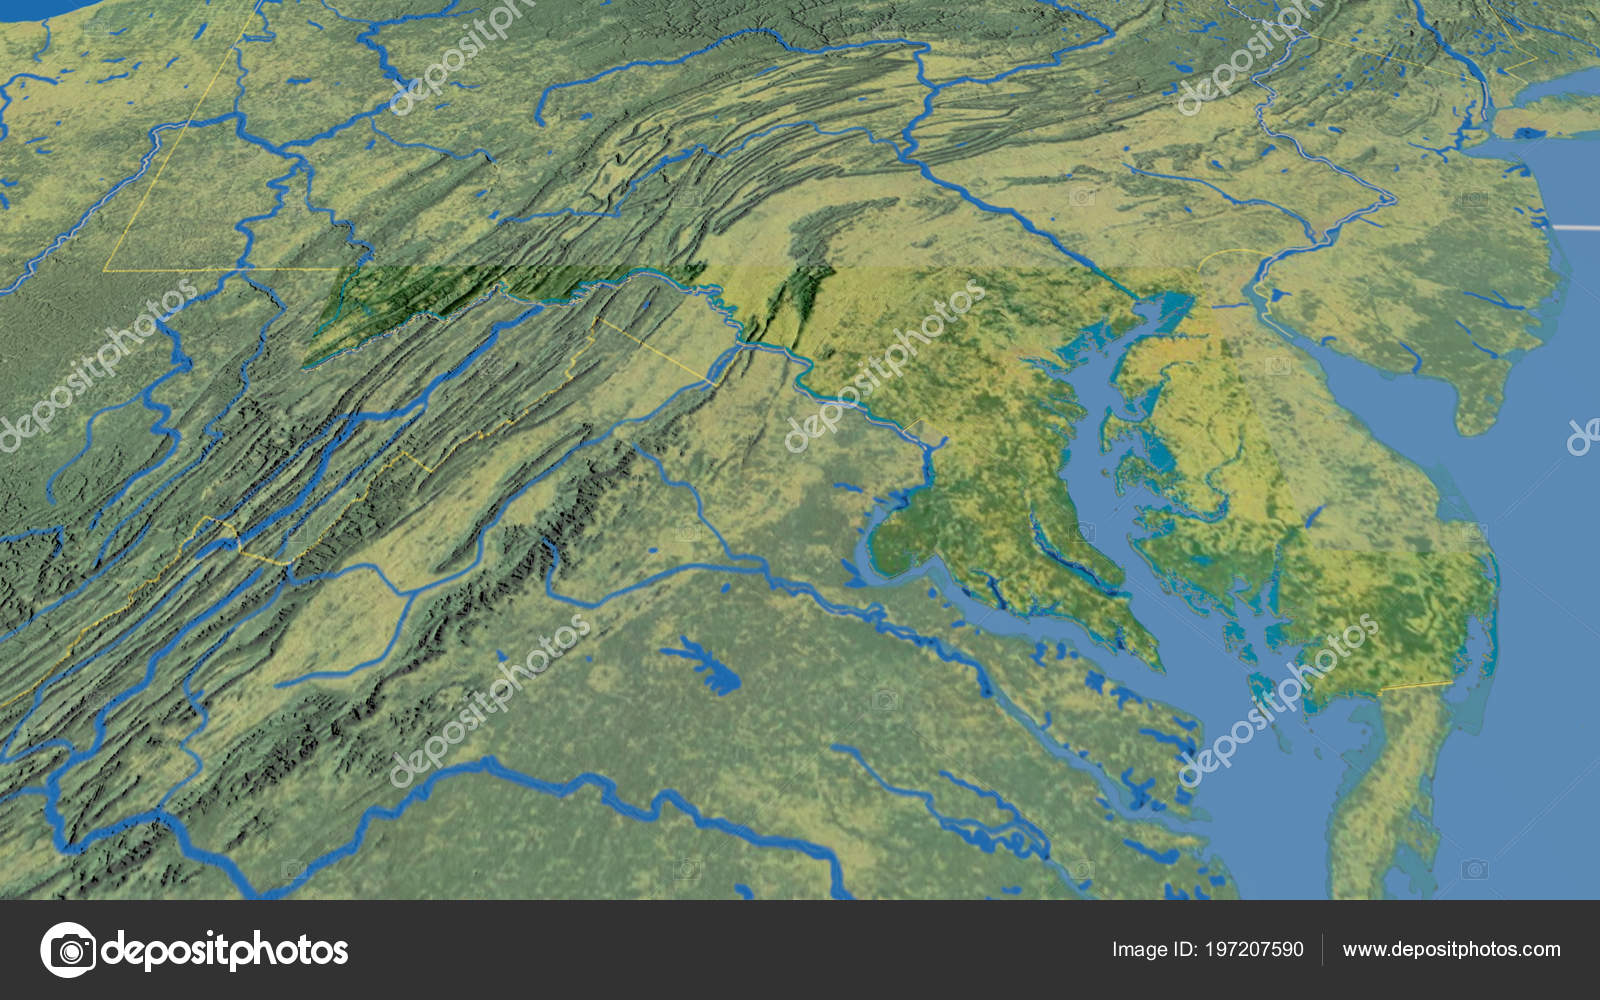 Maryland Region United States Extruded Topographic Map ...